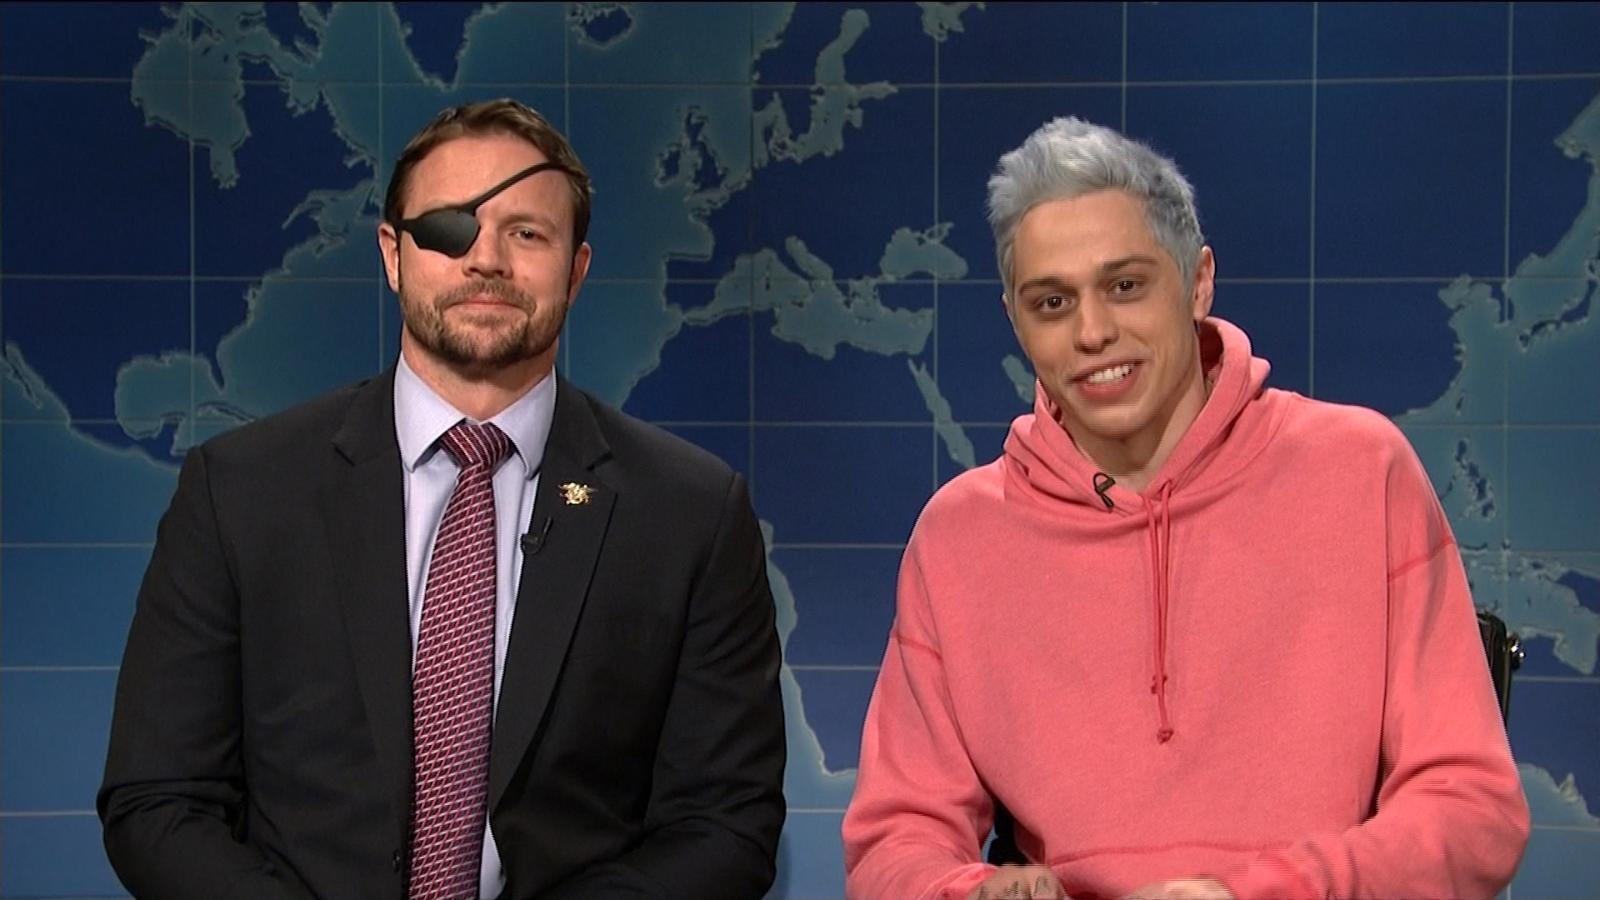 Dan Crenshaw called Pete Davidson after scare